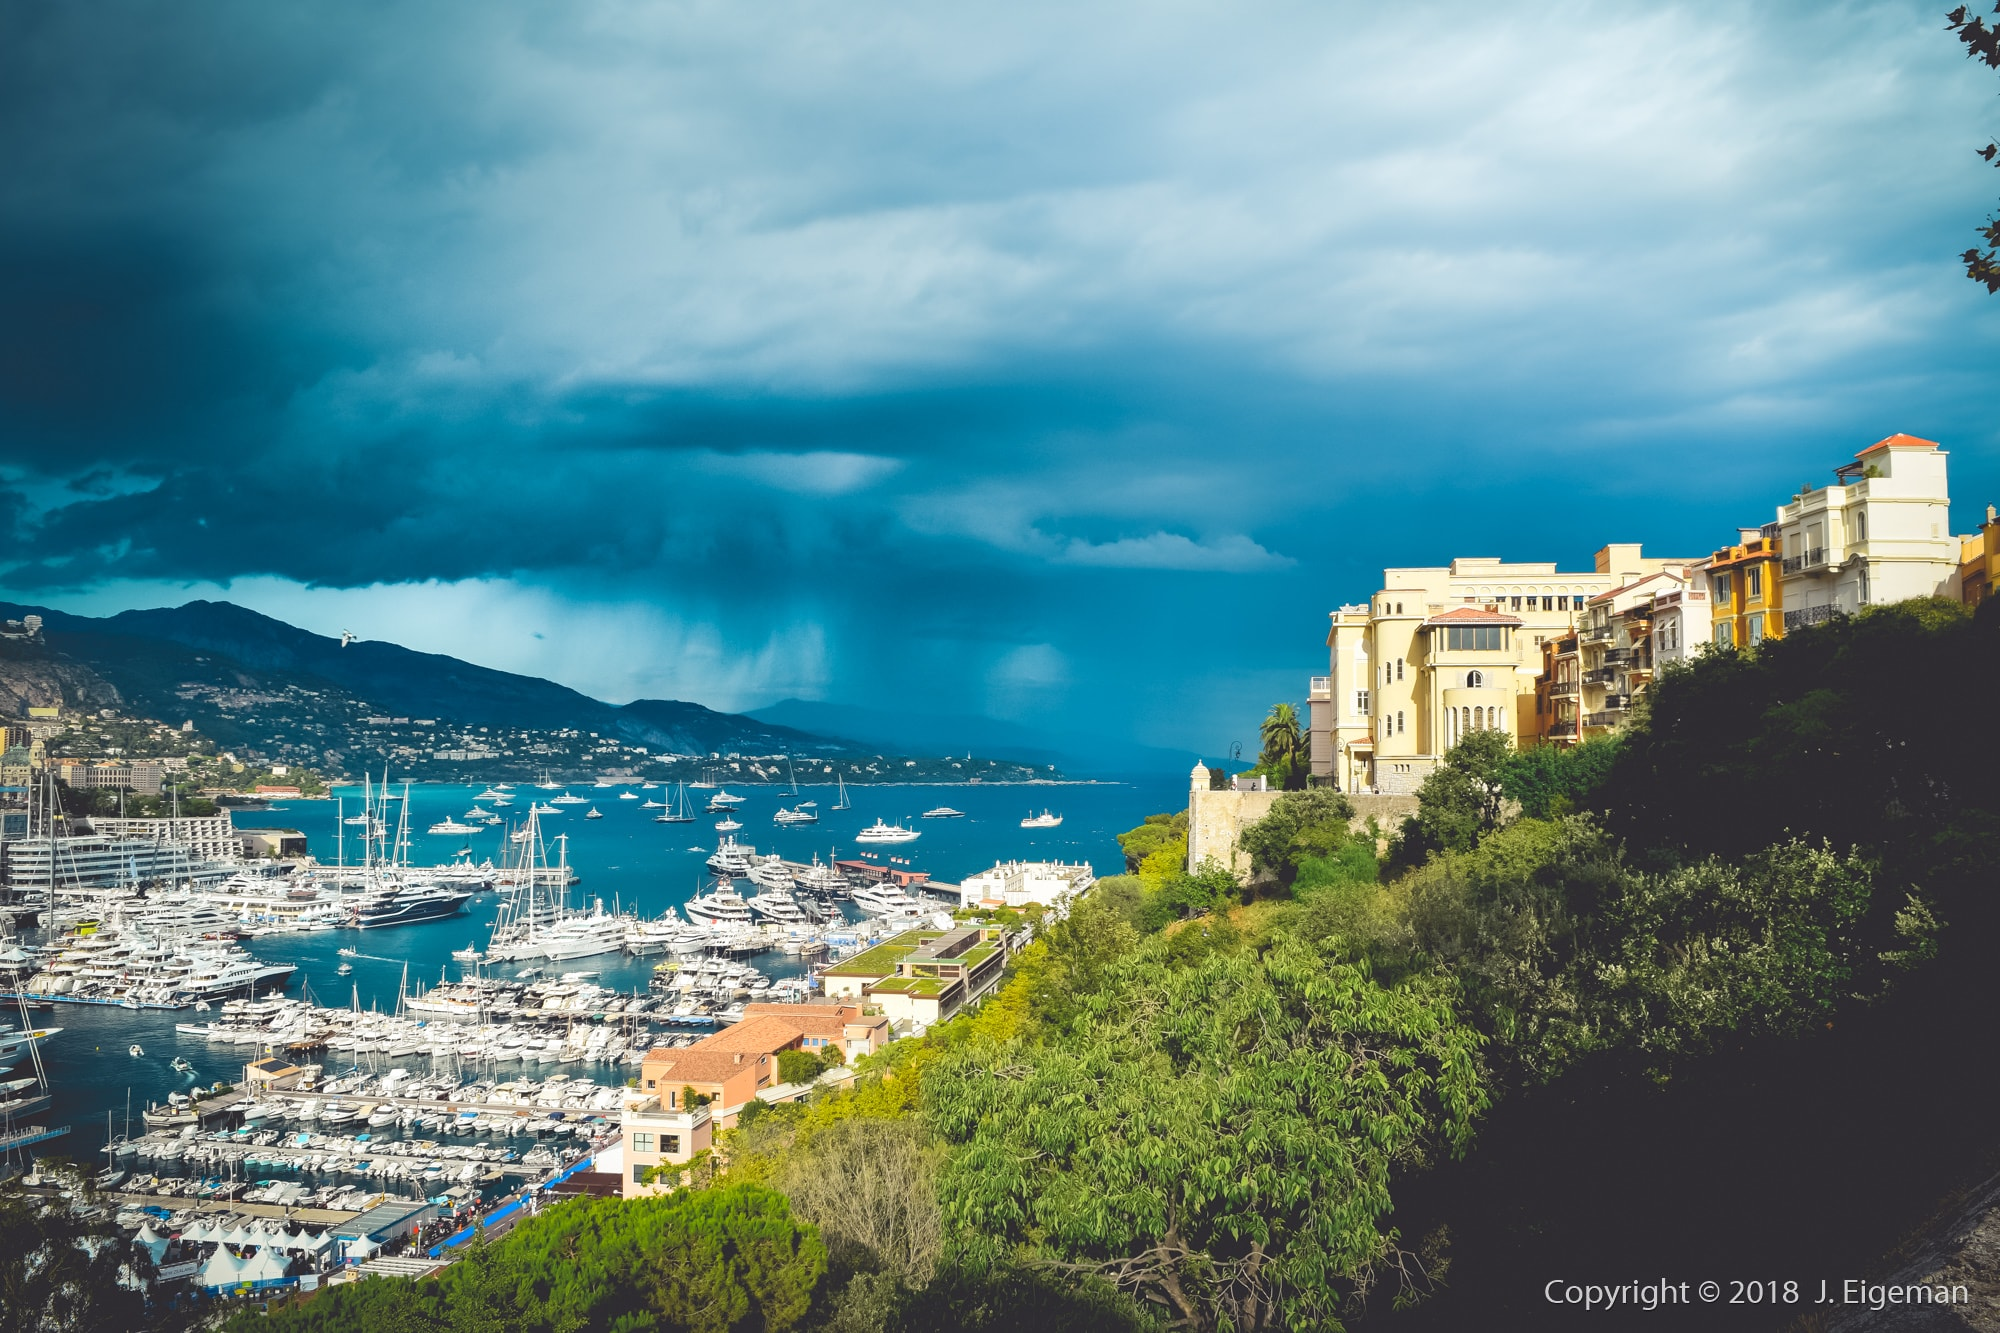 Landscape and cityscape photography Monaco